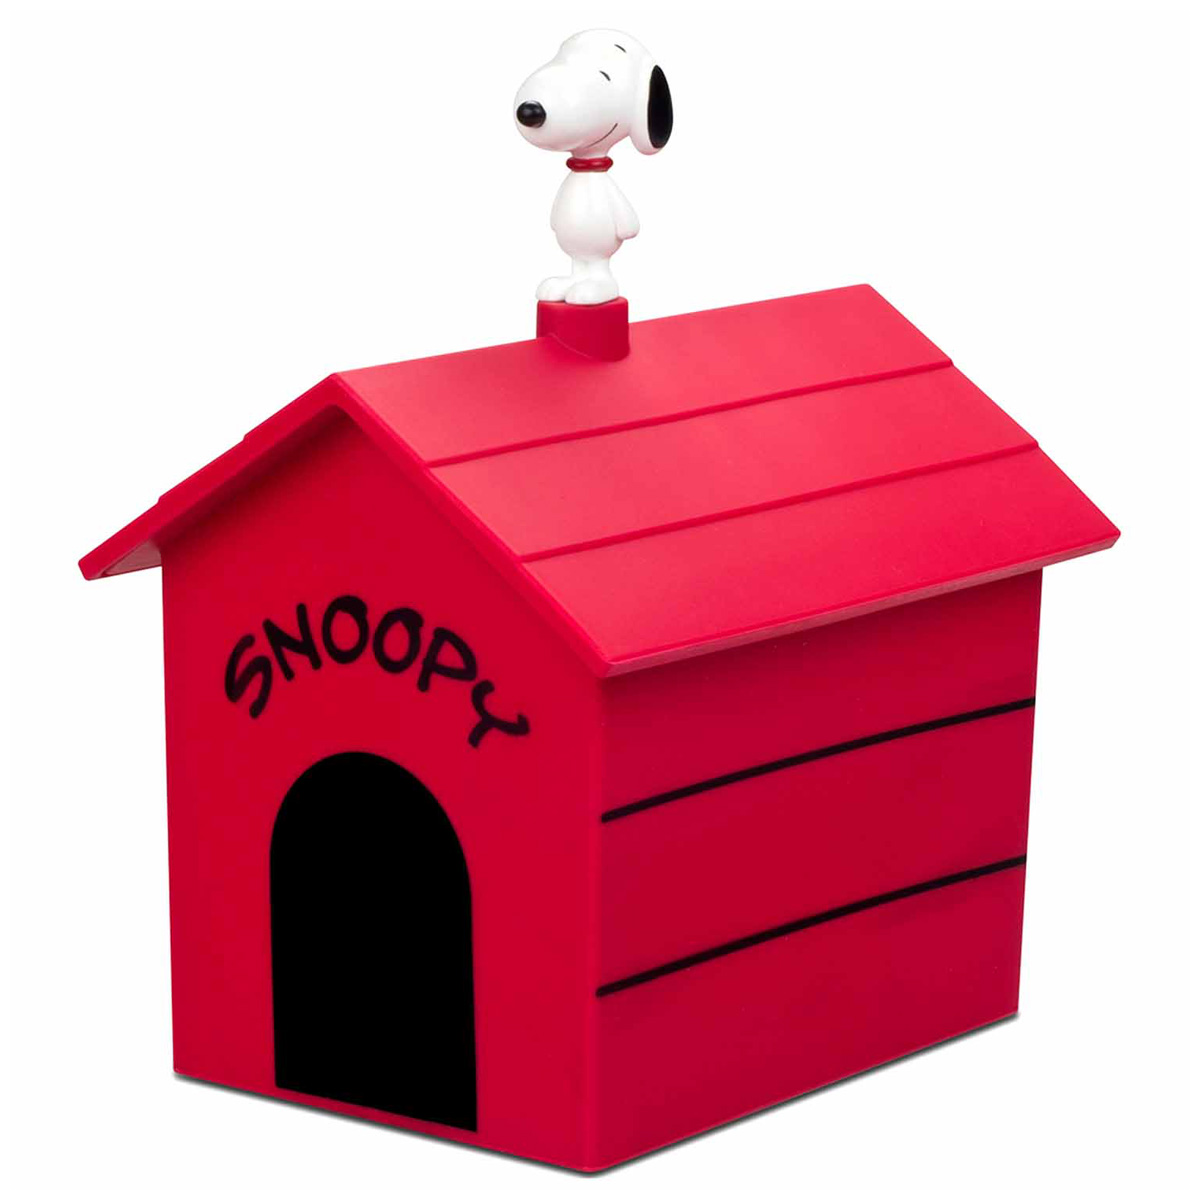 Snoopy Dog House Popcorn Popper The Green Head